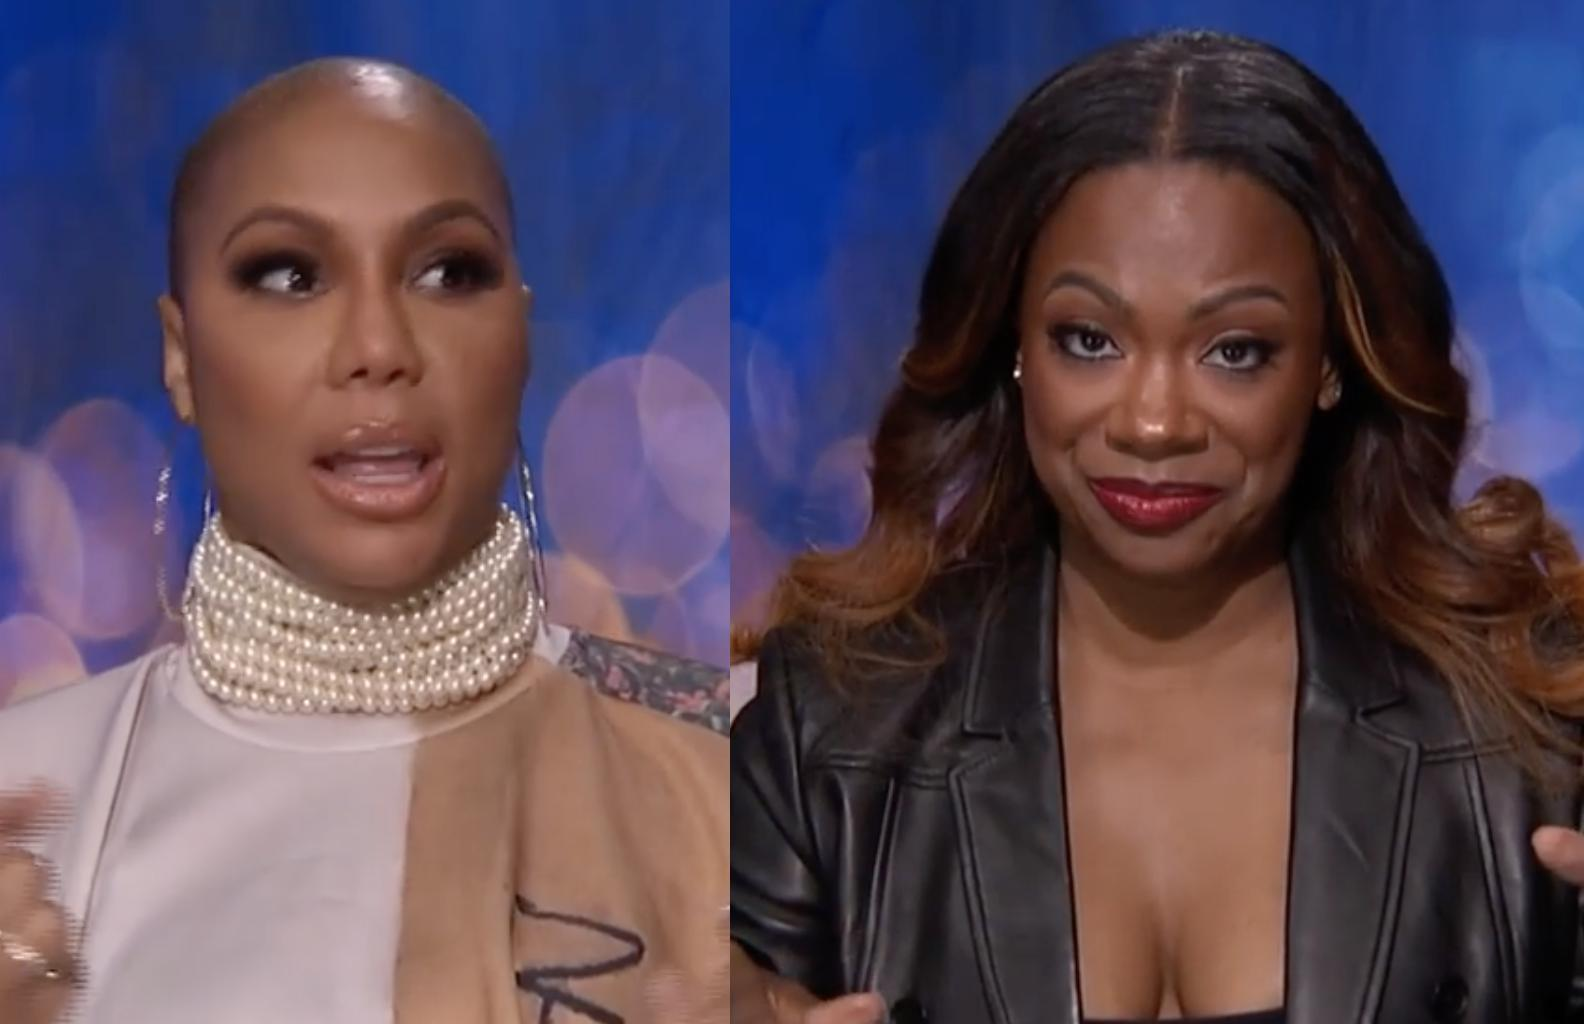 The Latest Video From Celebrity Big Brother Shows Tamar Braxton And Kandi Burruss Squashing Their Beef